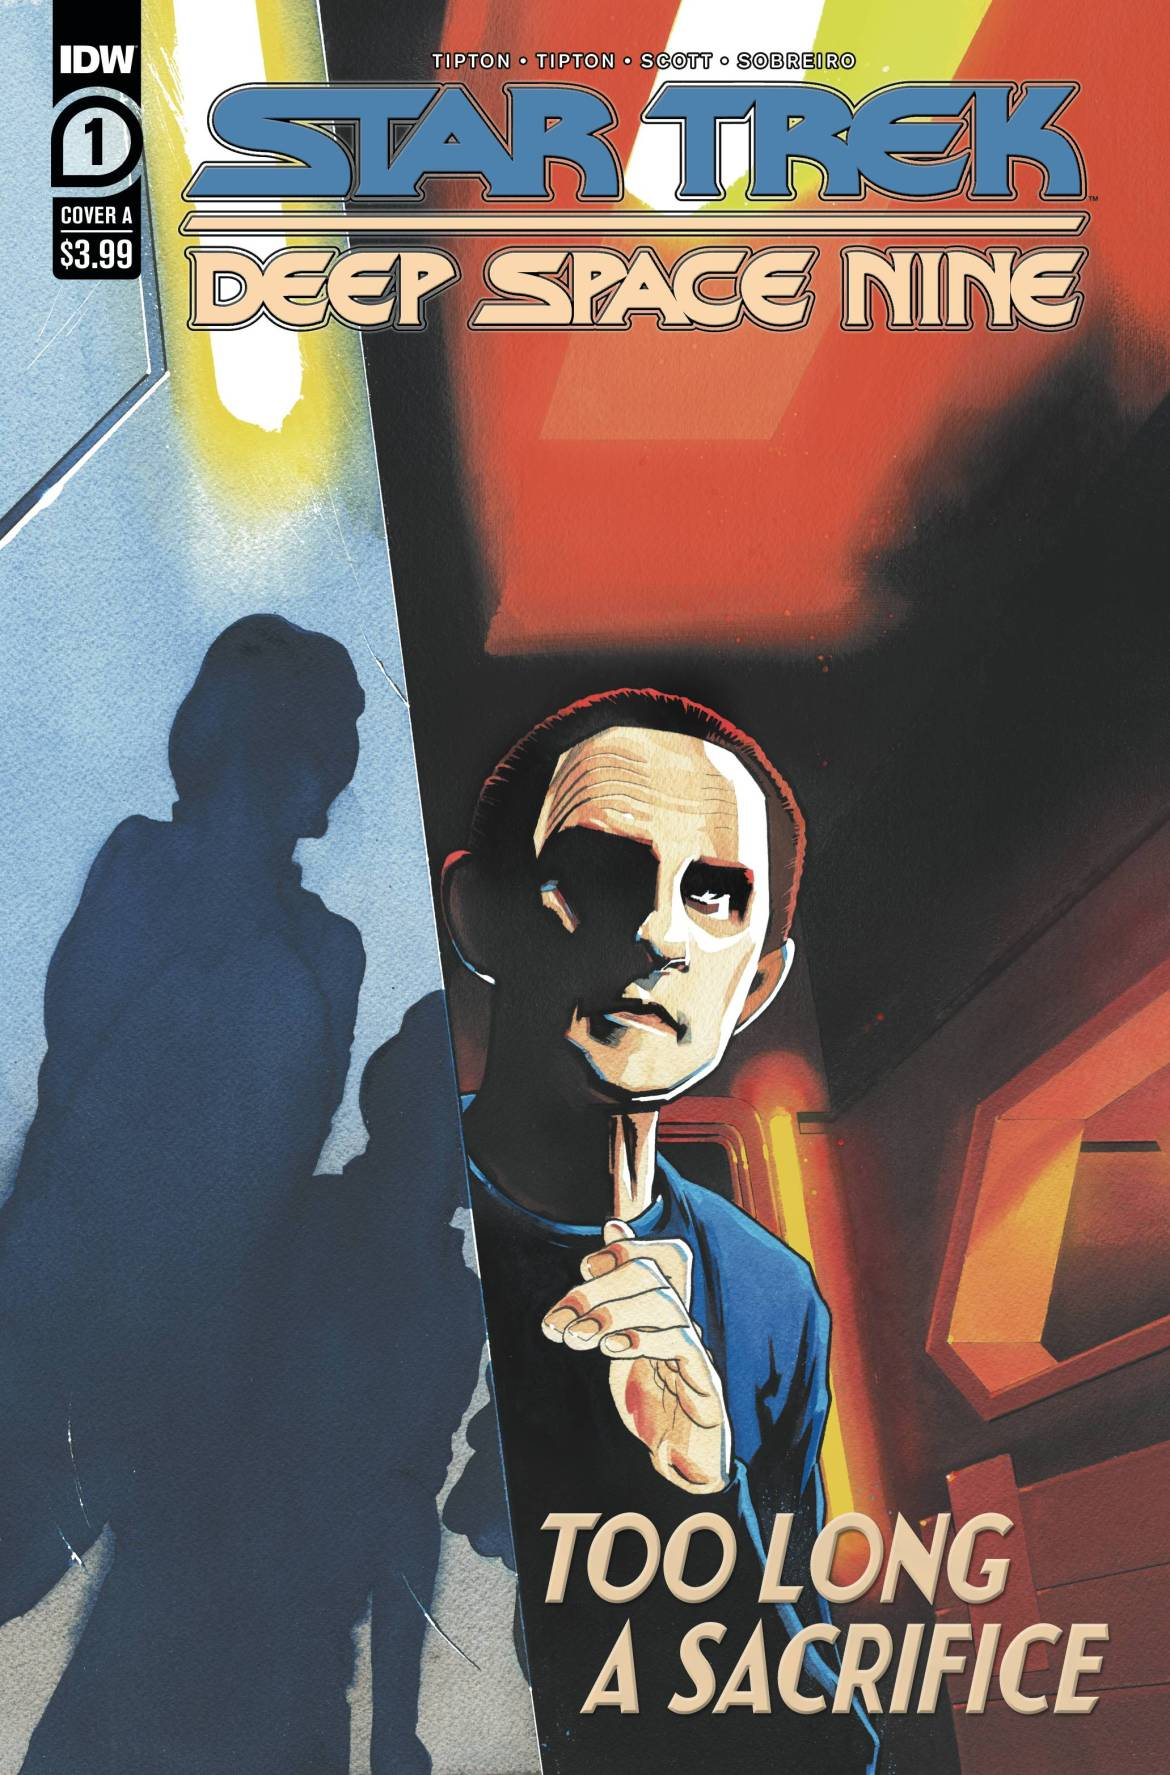 787833_star-trek-ds9-too-long-a-sacrifice-1 ComicList: IDW Publishing New Releases for 07/15/2020